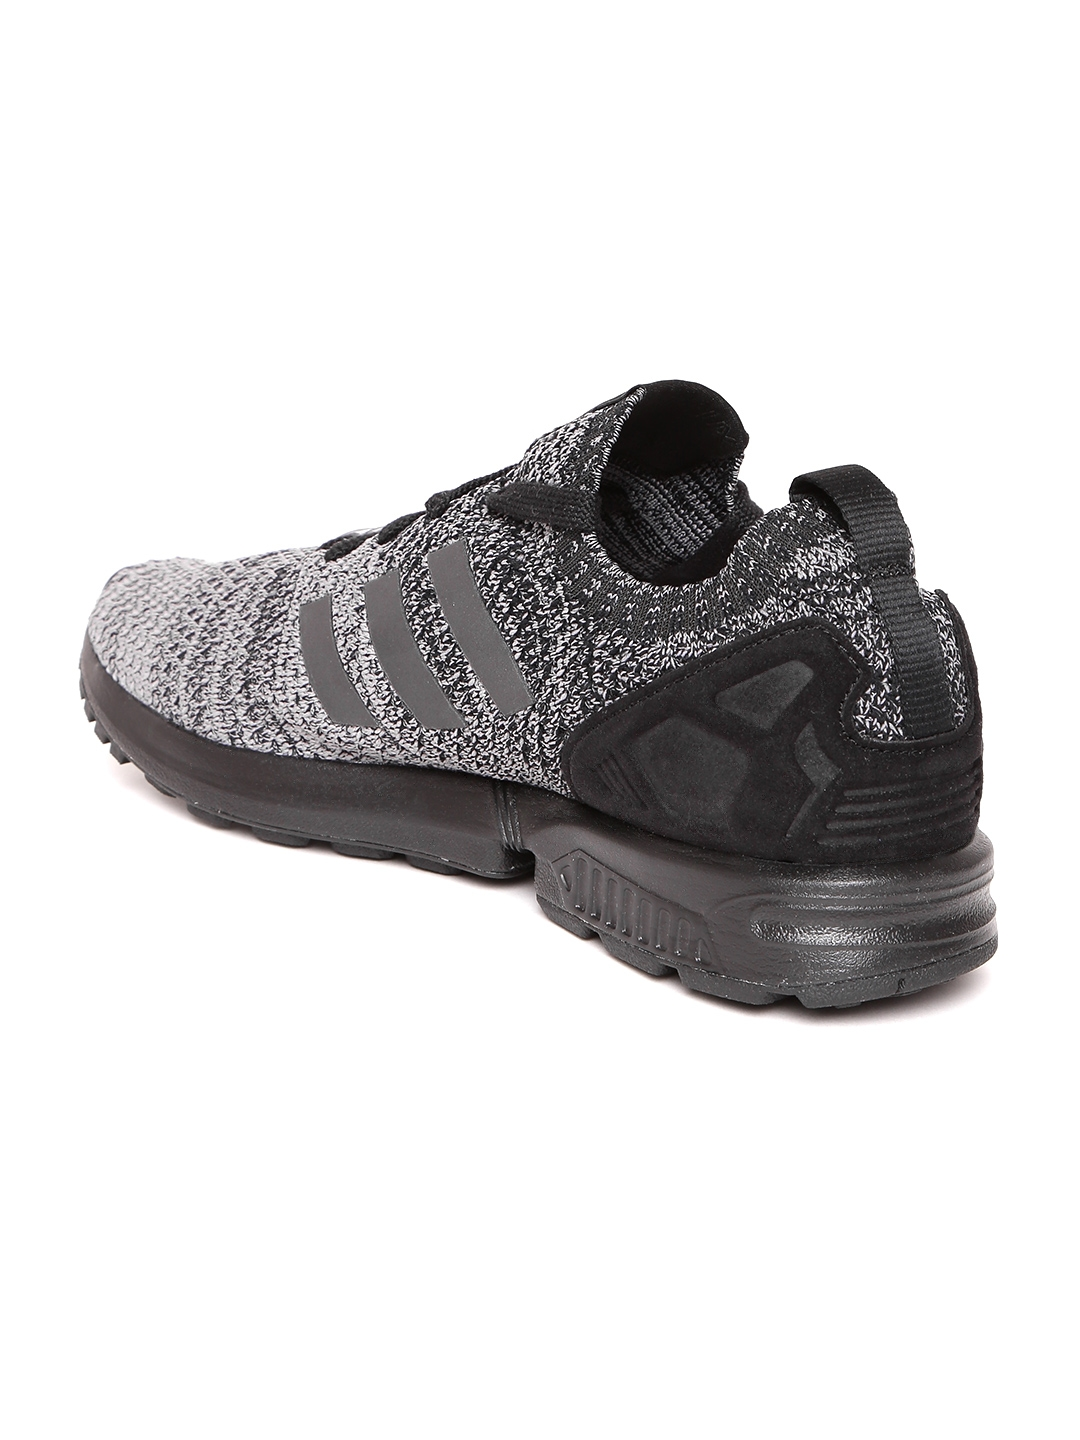 88f1388e3 Buy ADIDAS Originals Men Grey ZX FLUX Prime Knit Sneakers - Casual ...